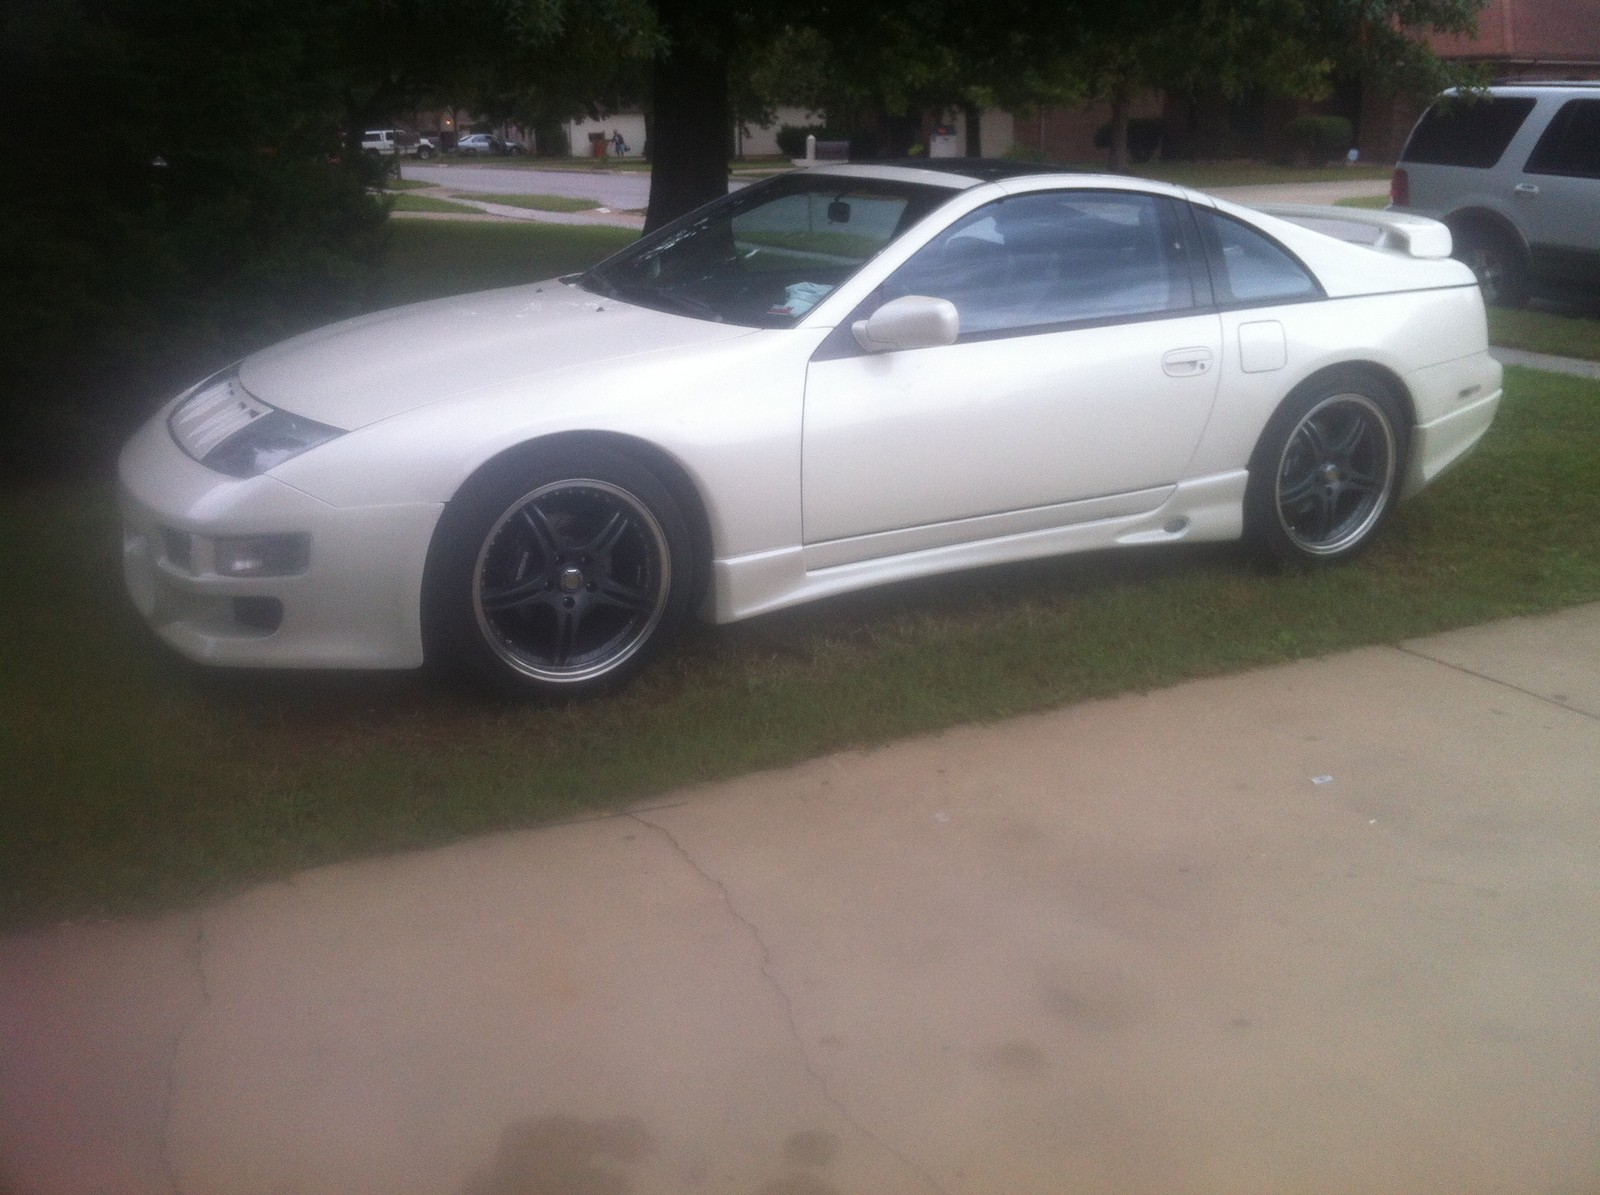 Pearl white (kh6) 1991 Nissan 300ZX